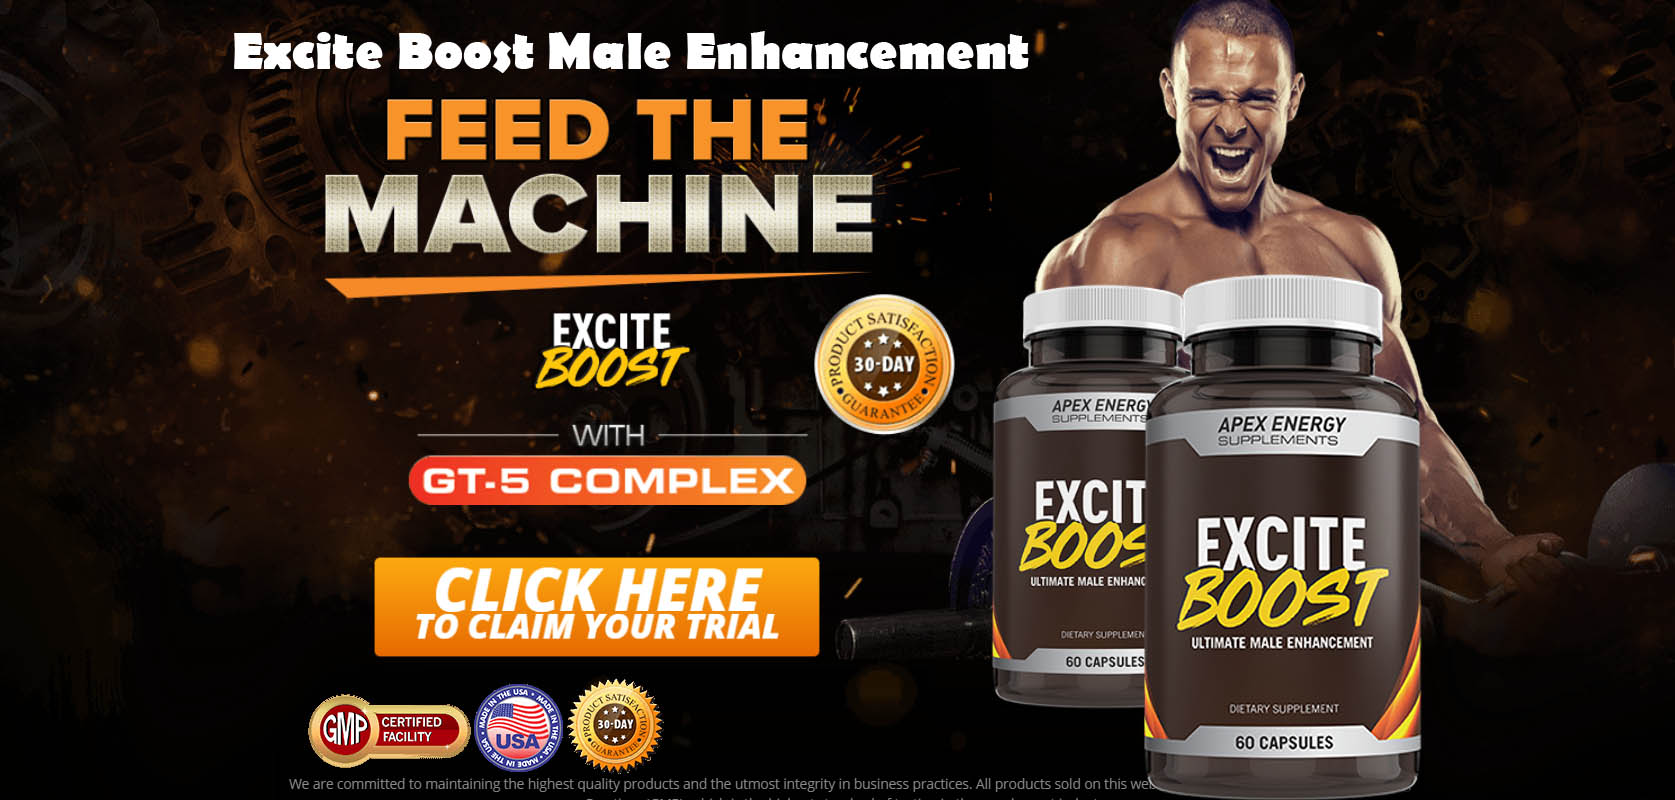 Excite-Boost-Male-Enhancement12